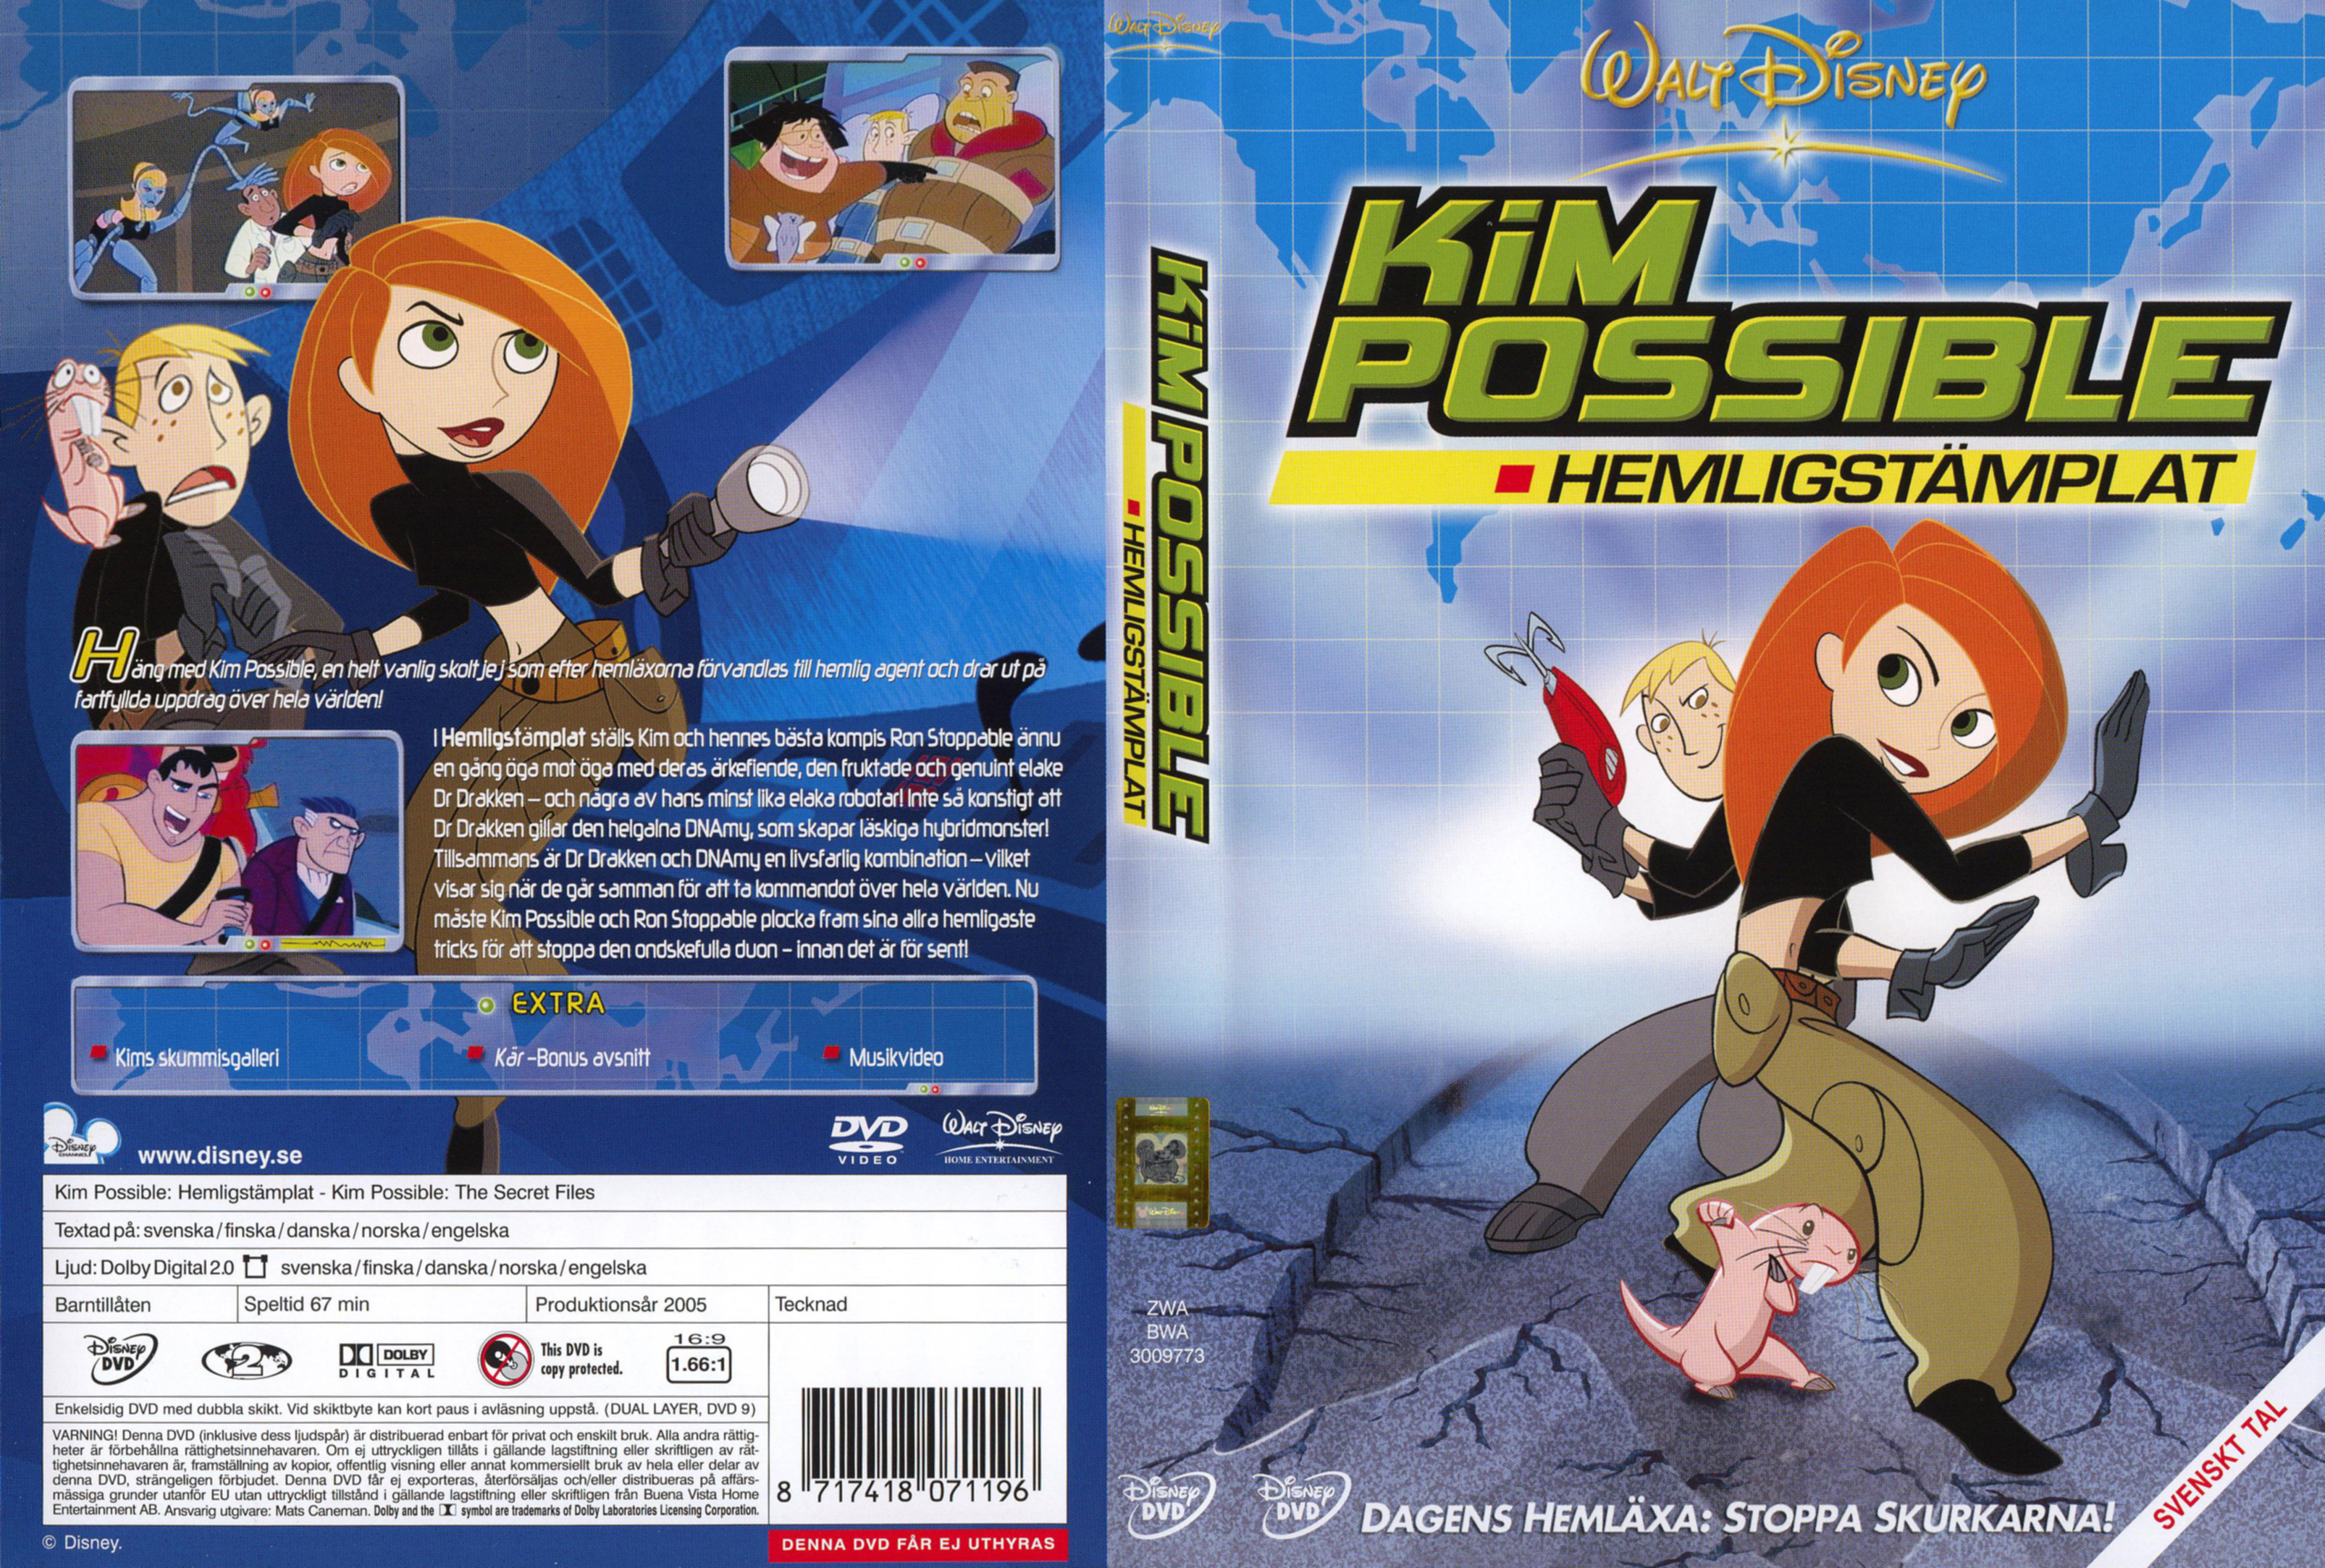 Kim Possible: The Secret Files (2003)